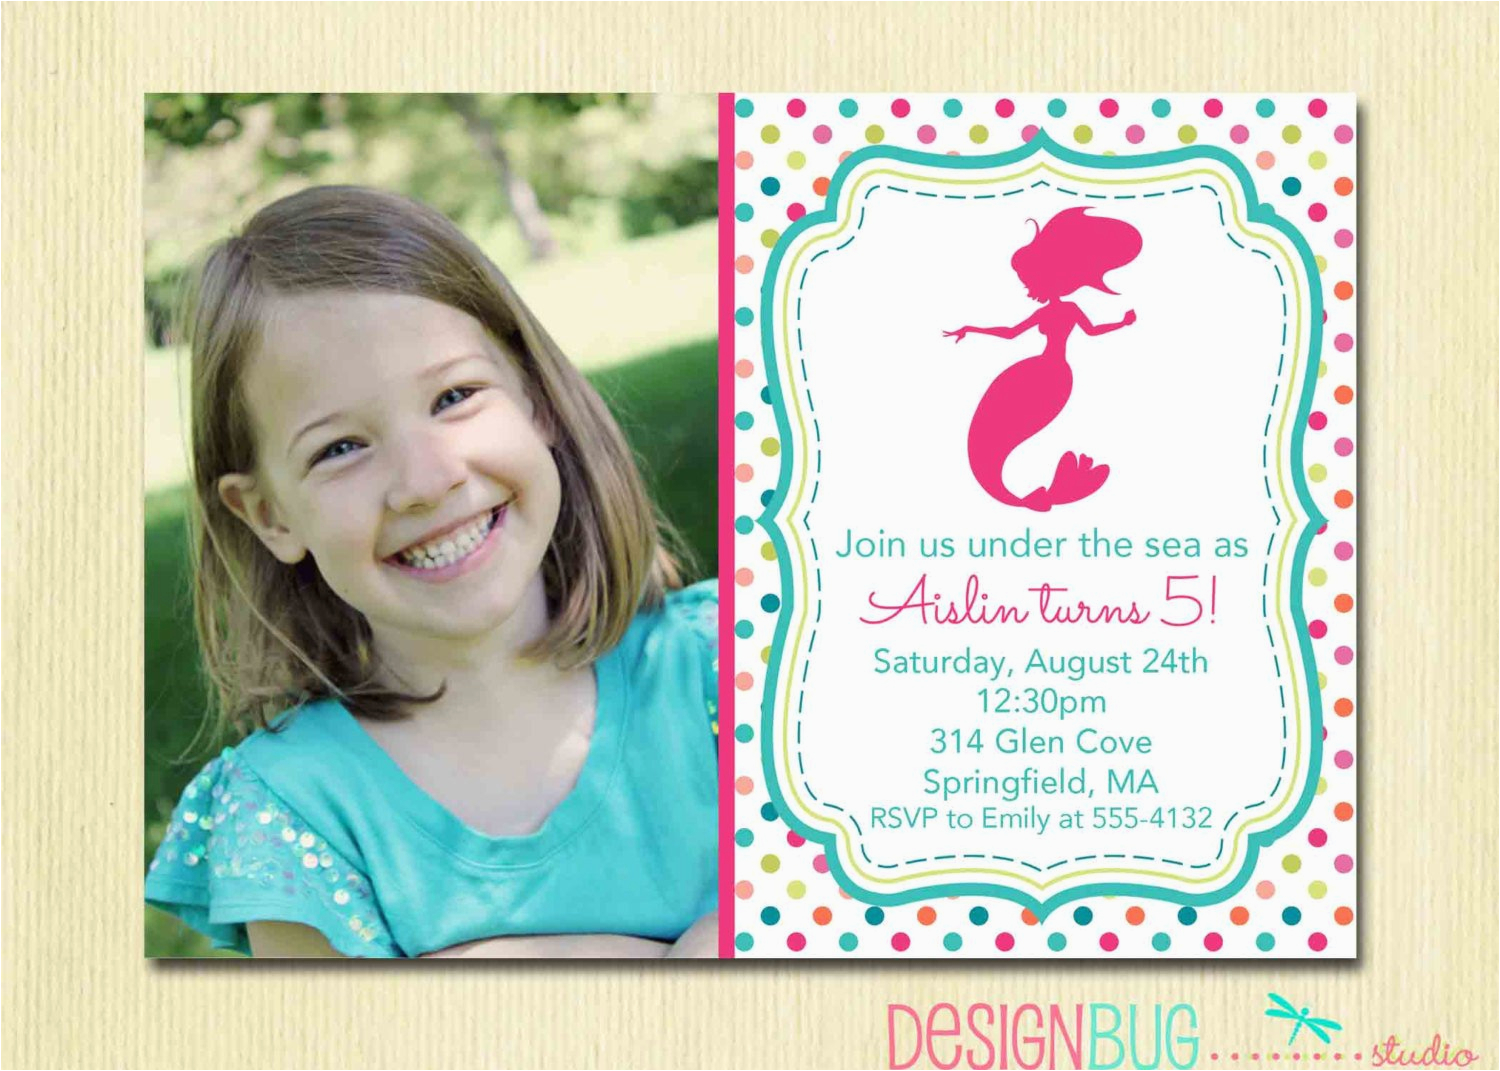 Mermaid Birthday Invitation 1 2 3 4 5